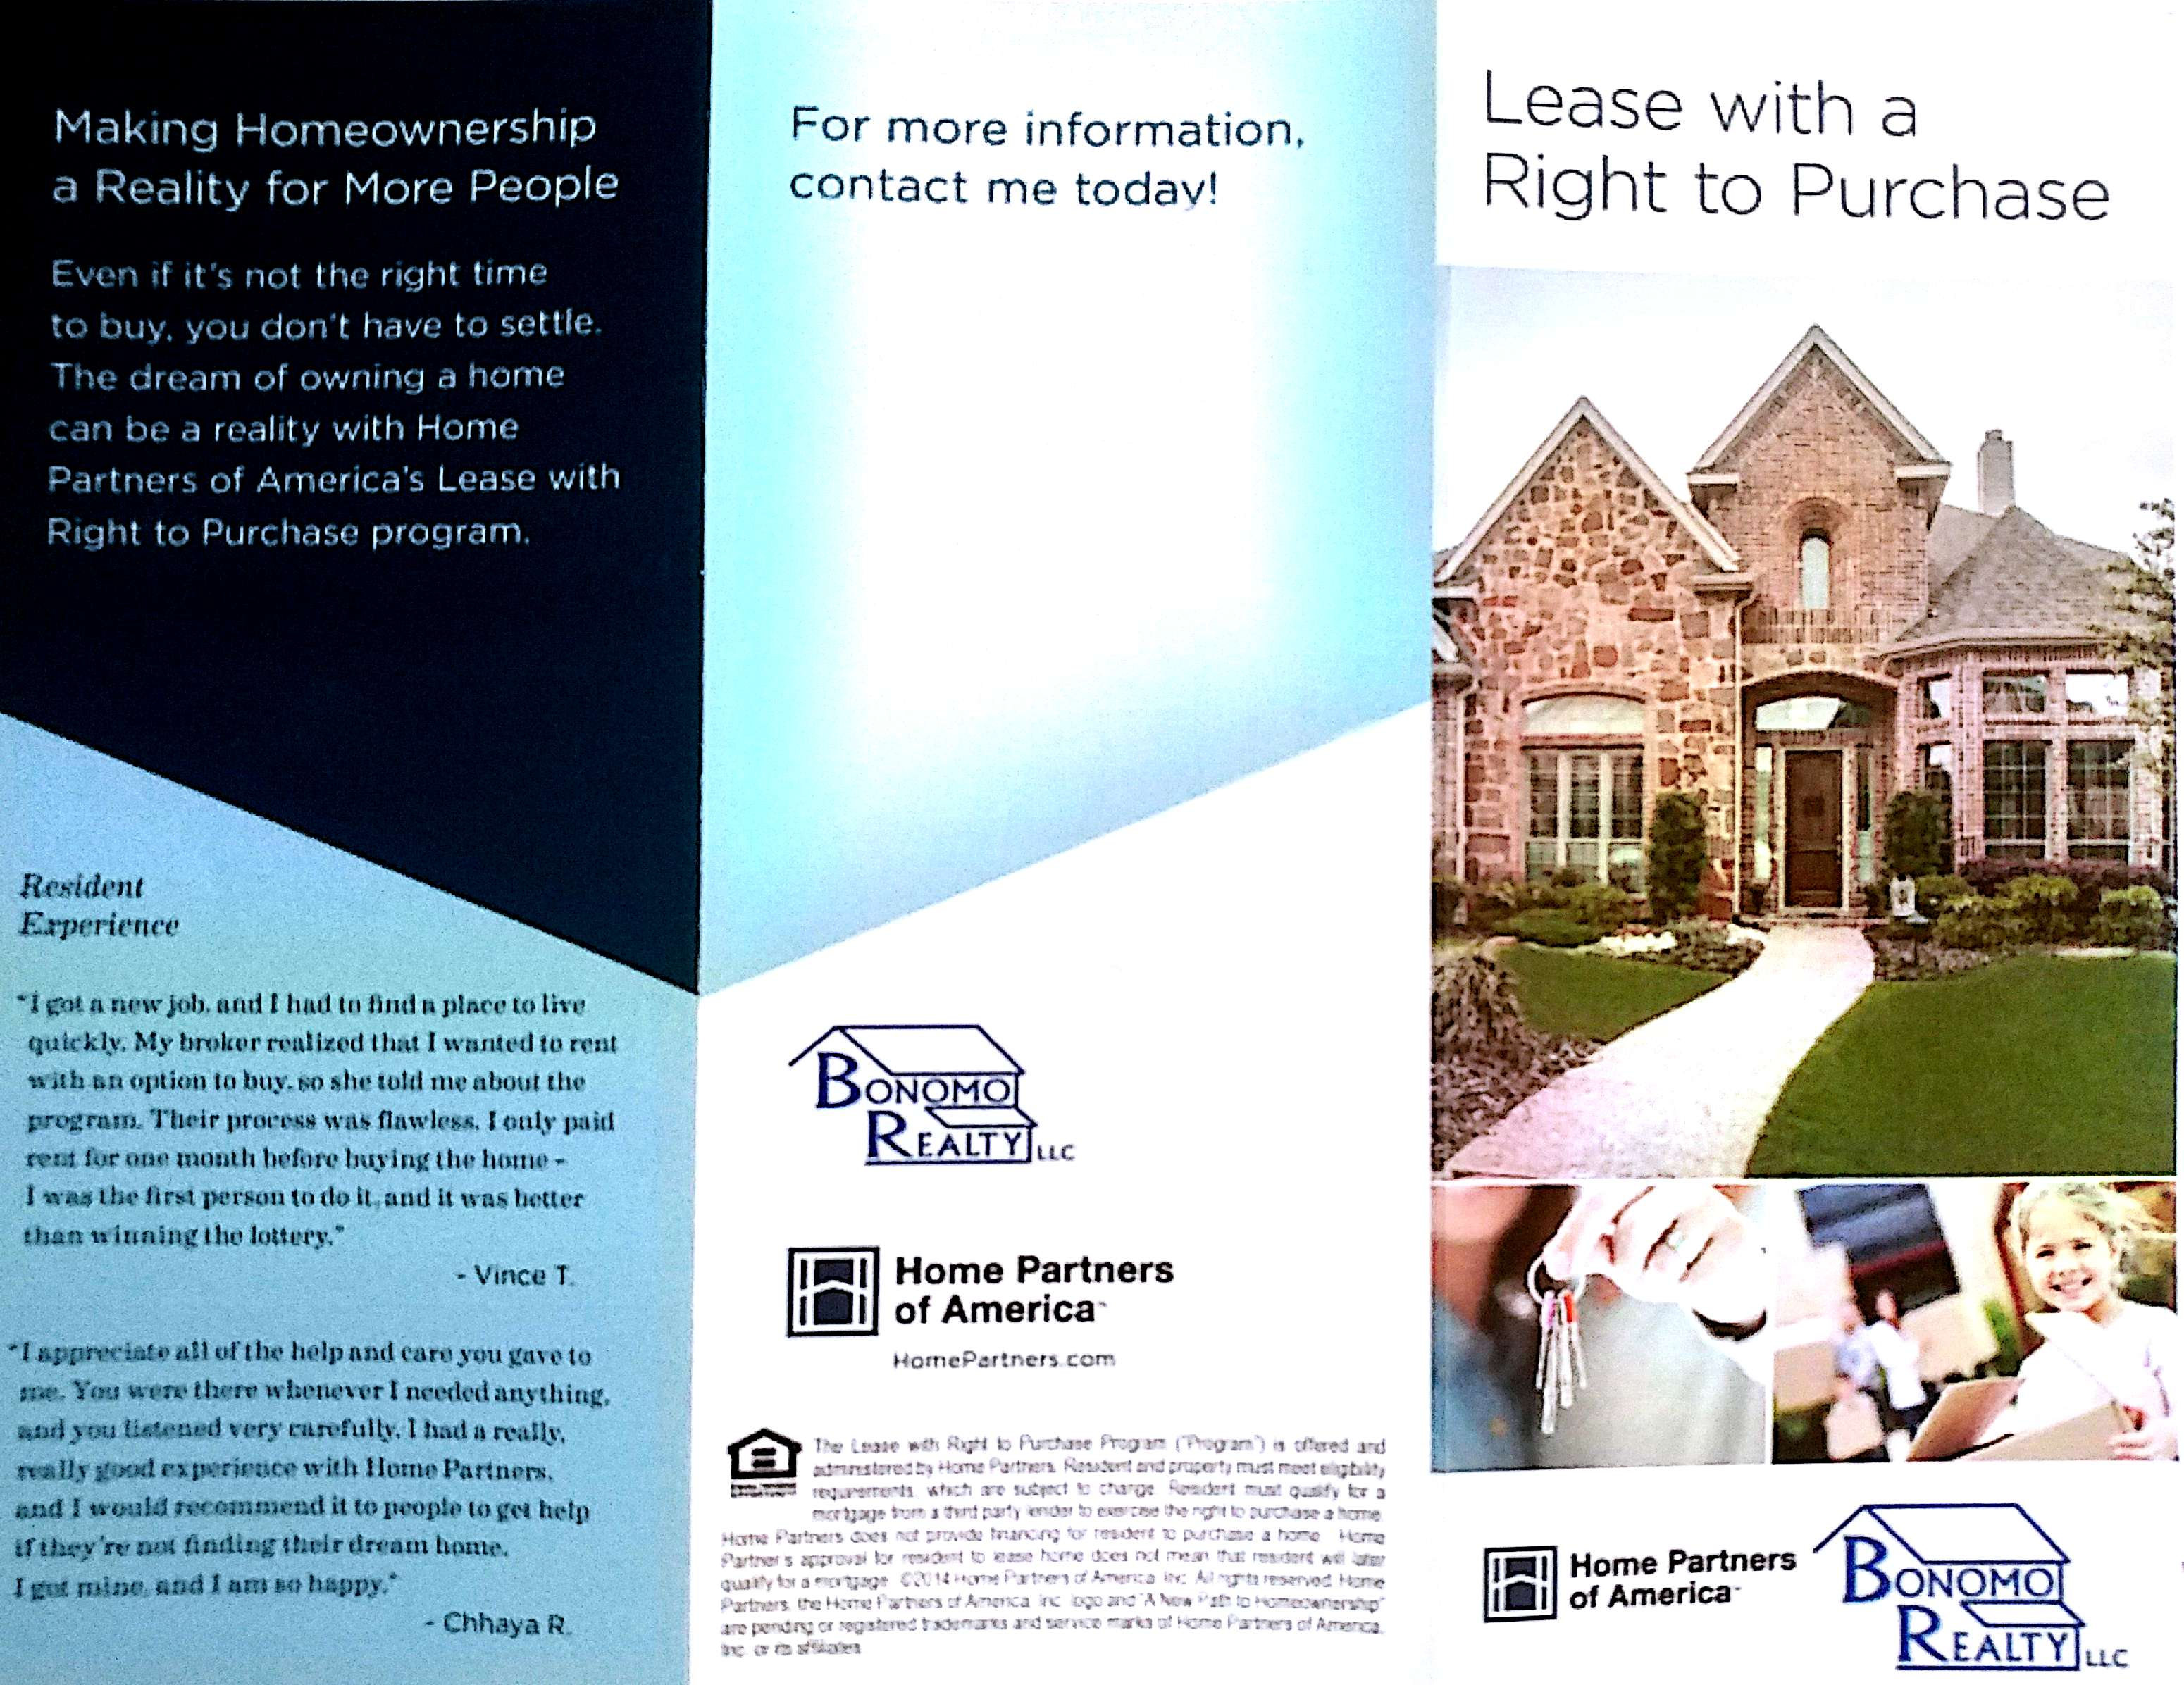 Home-Partners-Bonomo-Realty